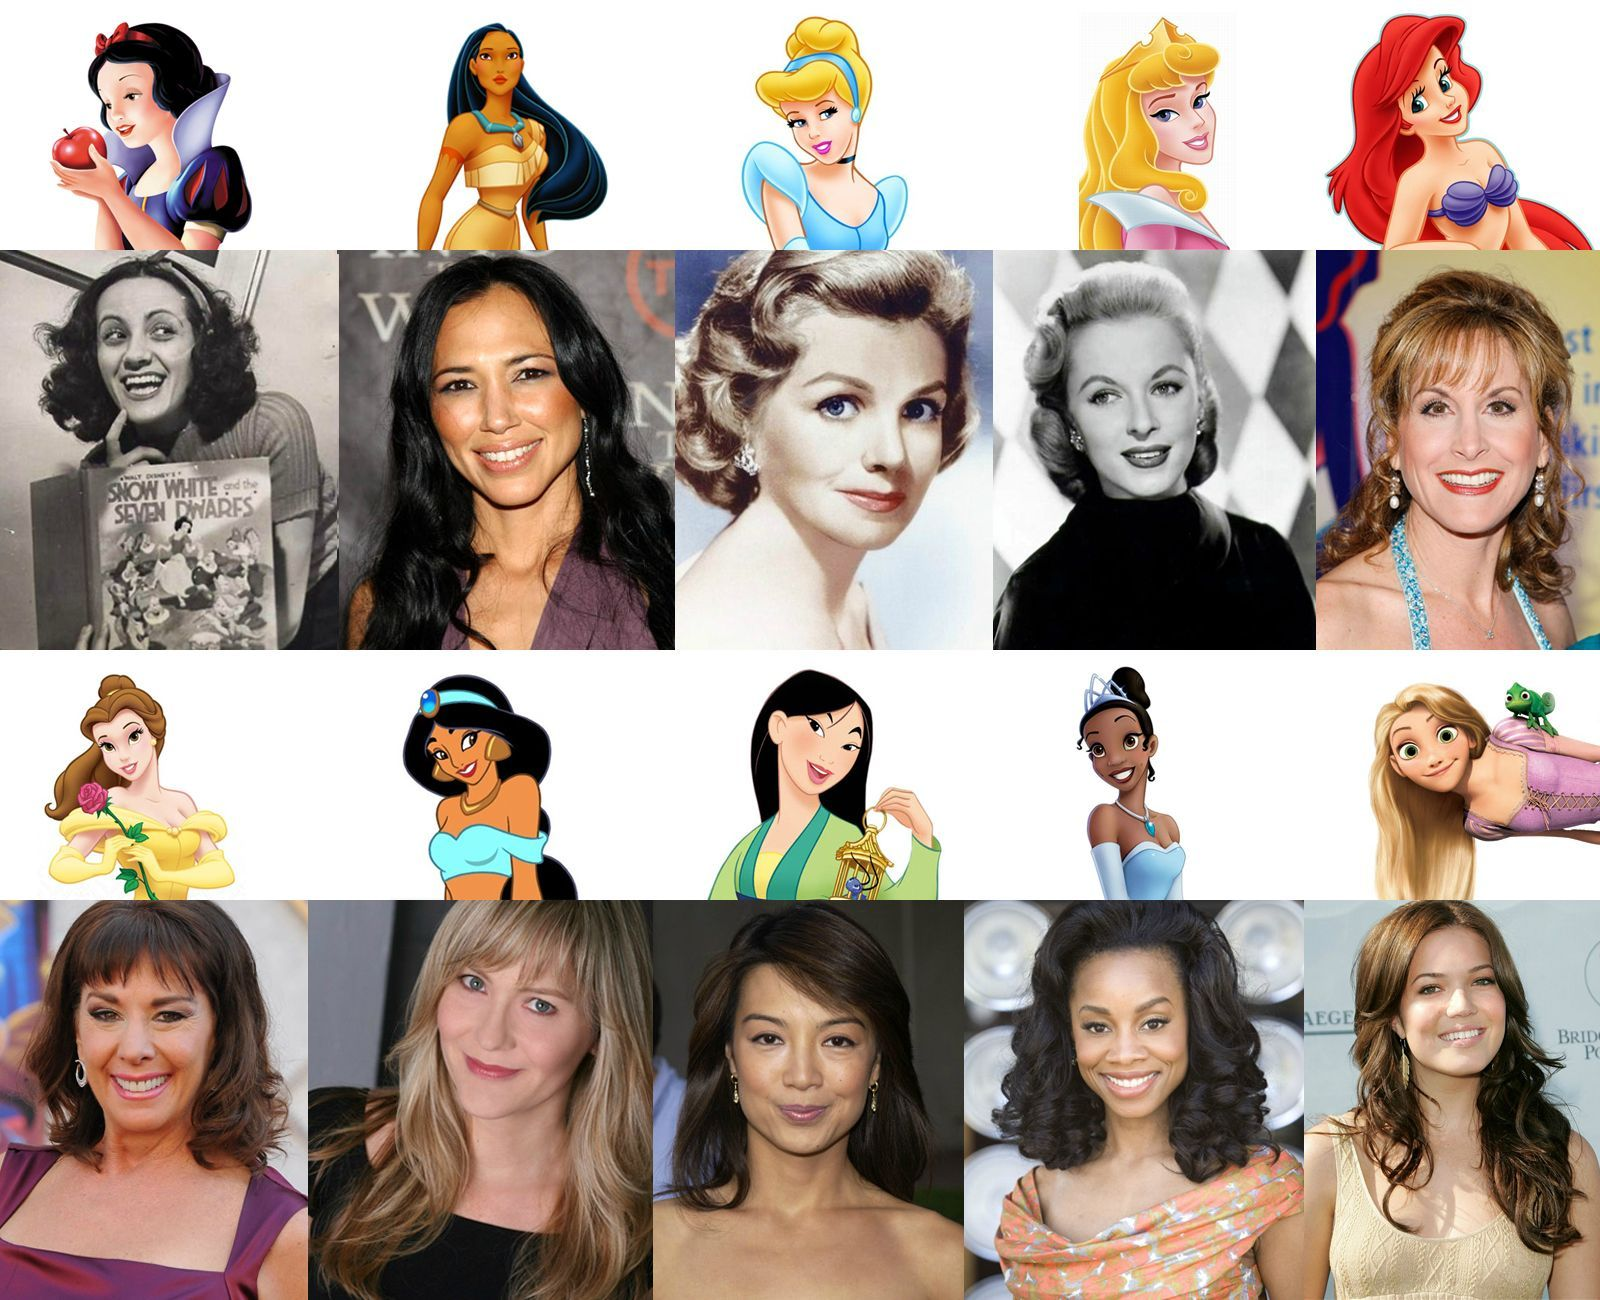 Disney Princesses and their voice actors. Most of these